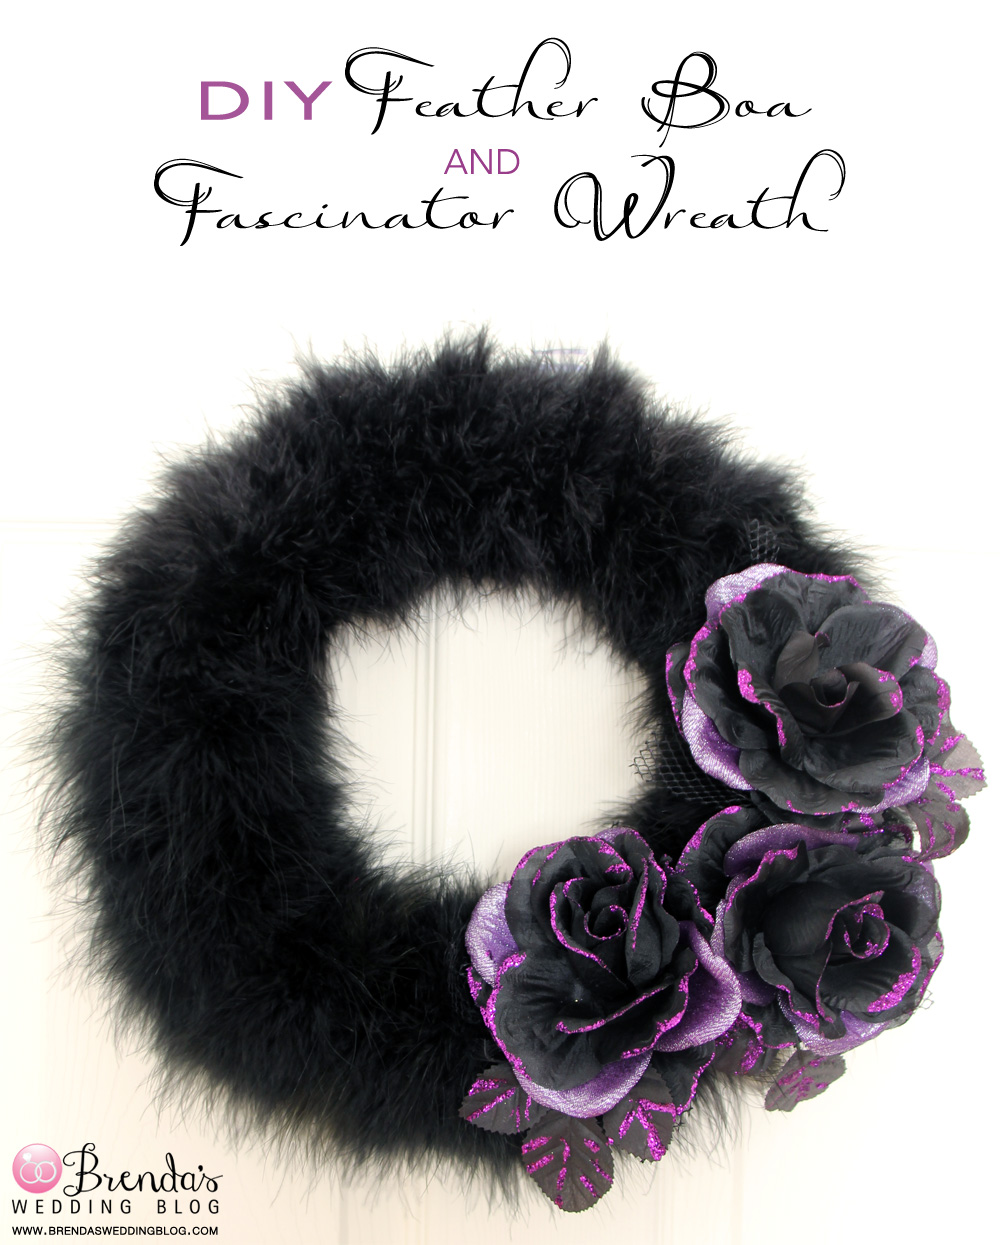 #DIY #Halloween #Wreath with feathers and flower fascinators #purple #black